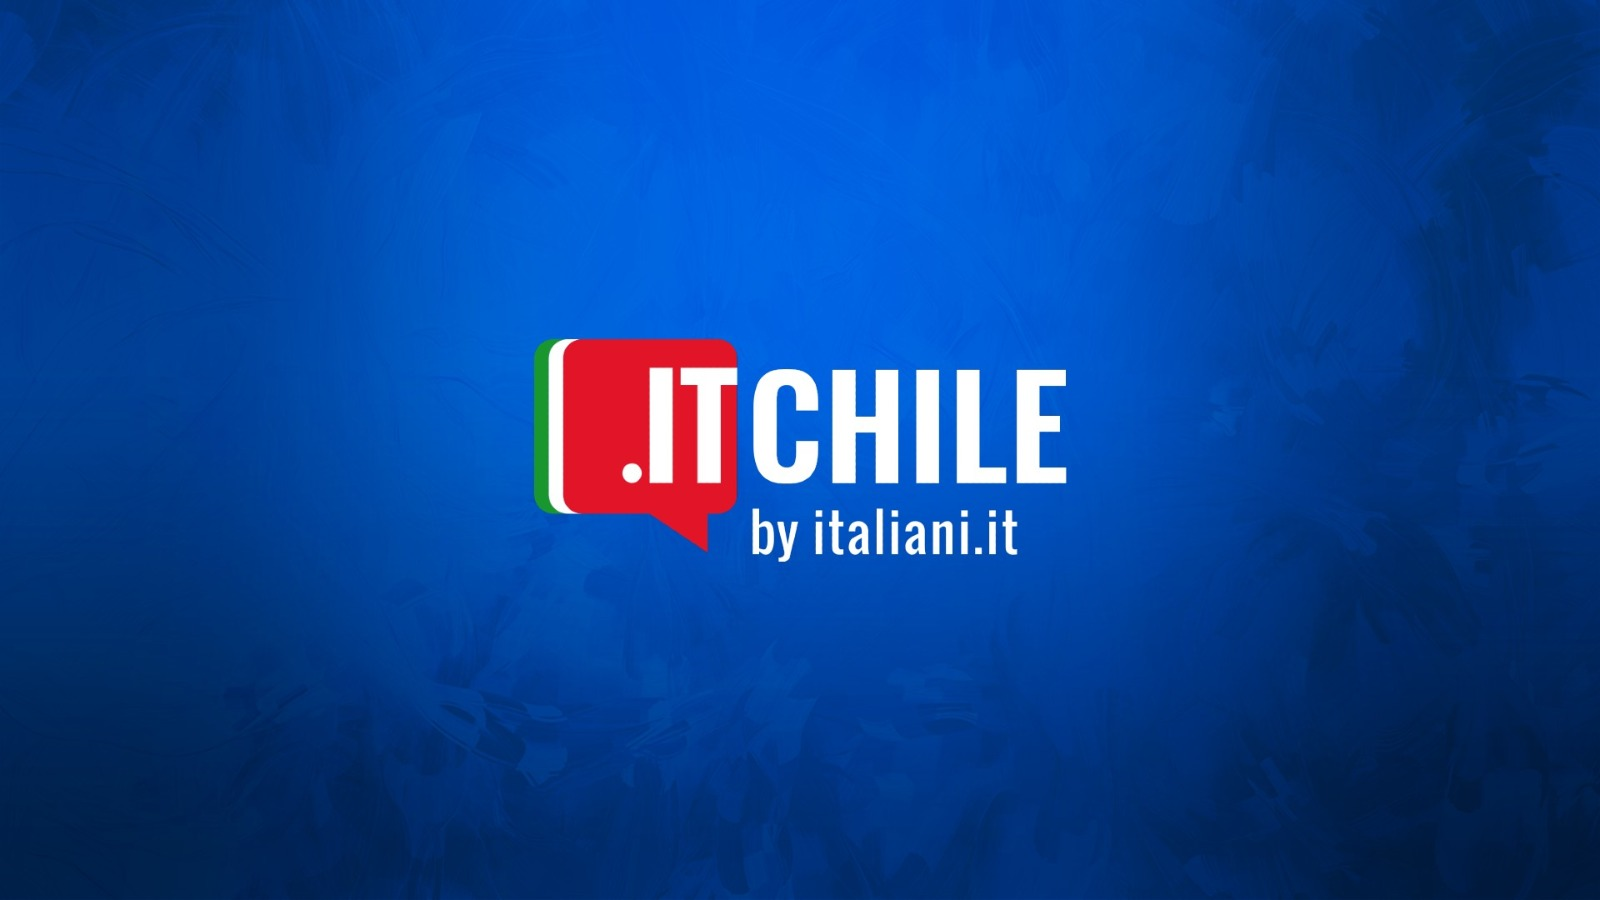 itChile